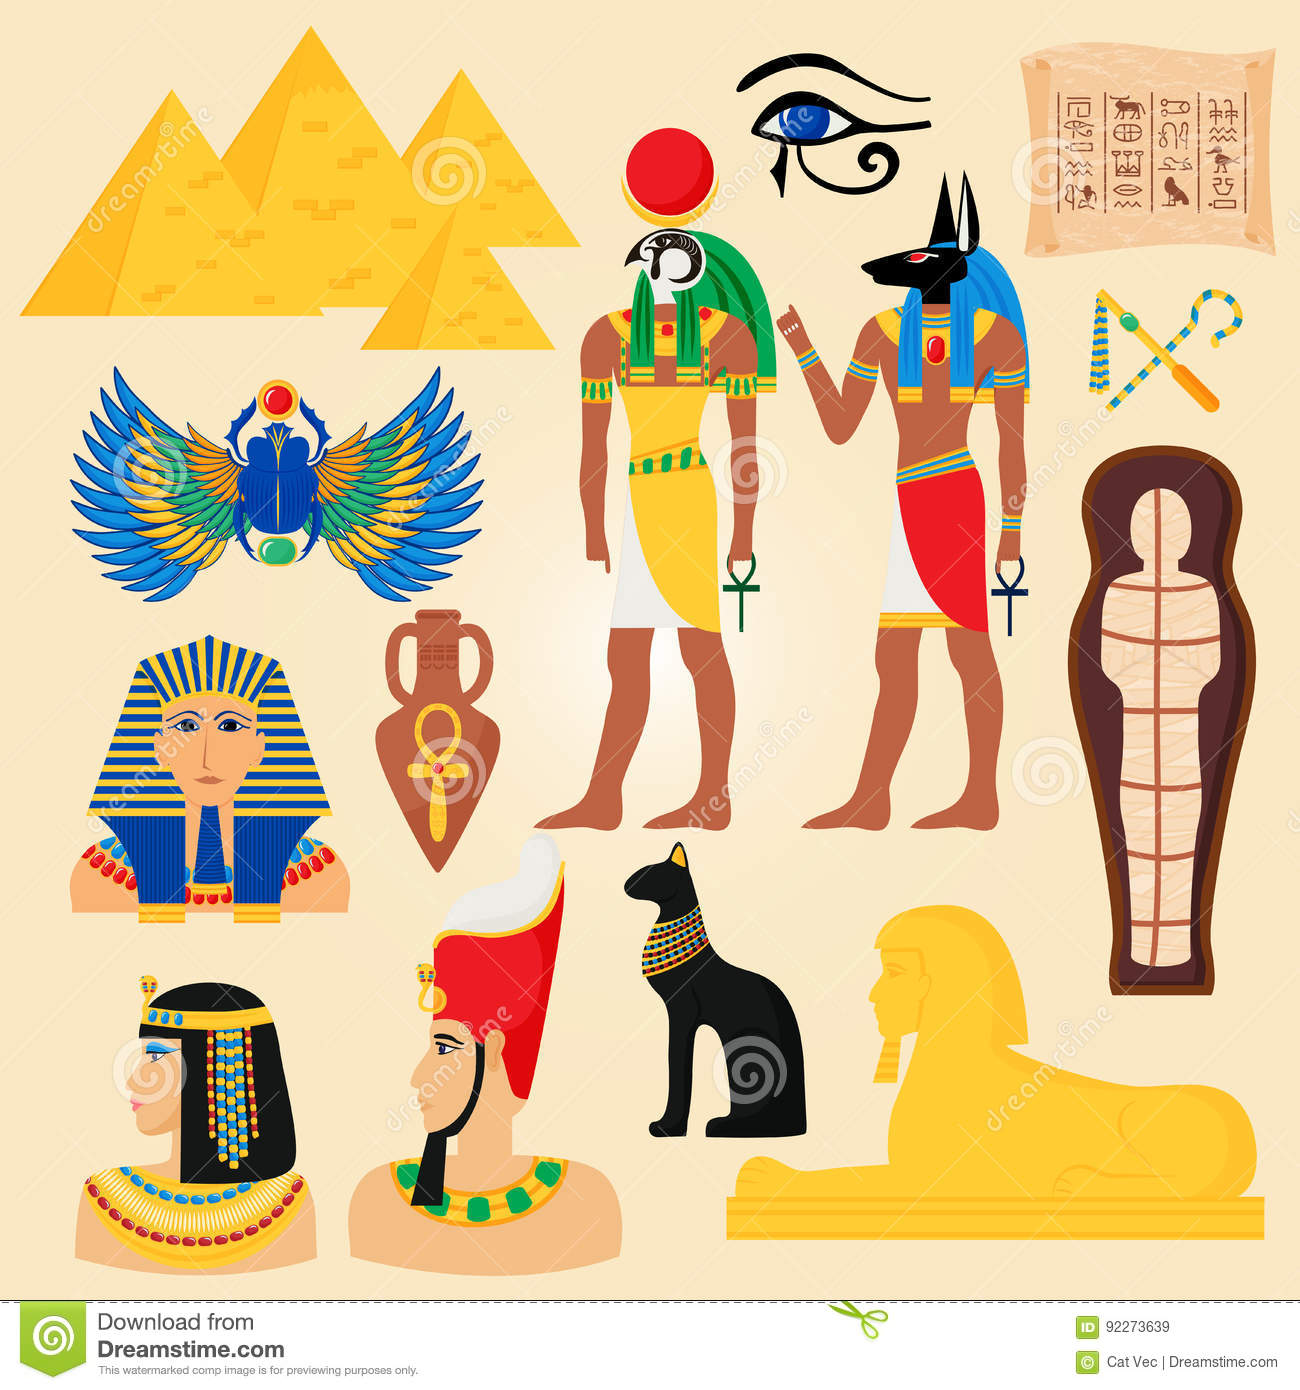 Egypt Symbols And Landmarks Ancient Pyramids Desert Egyptian People